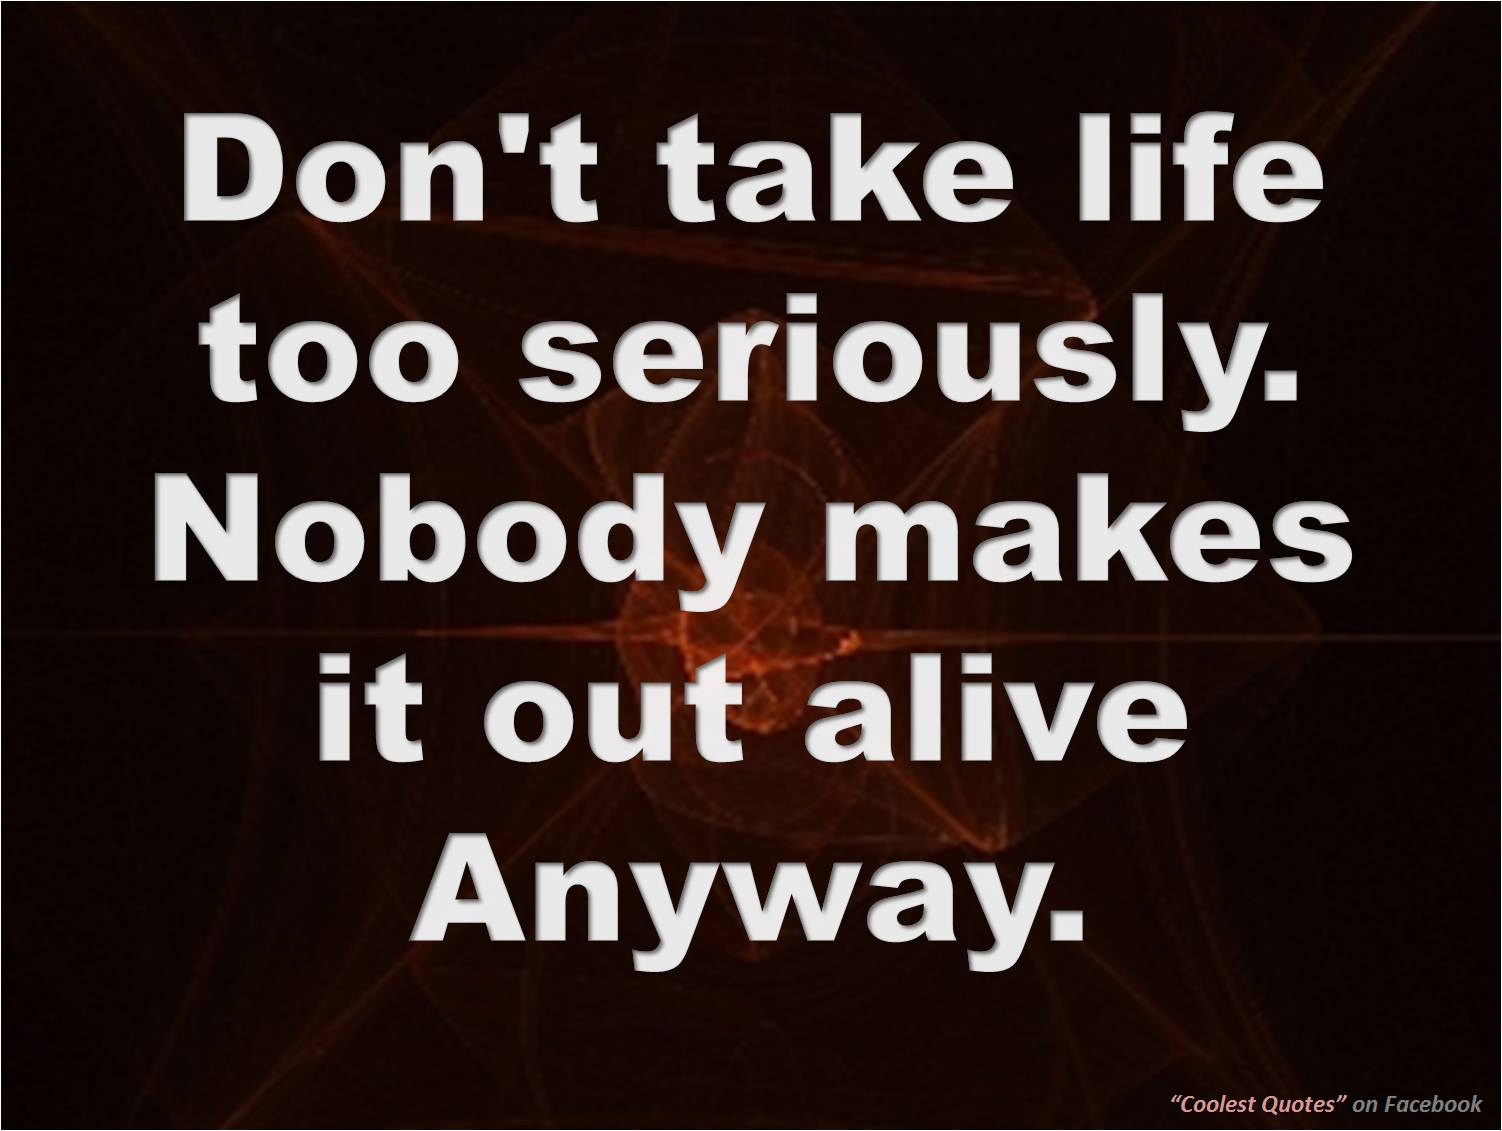 Quotes About Taking Life Too Seriously: My Coolest Quotes: Don't Take Life Too Seriously